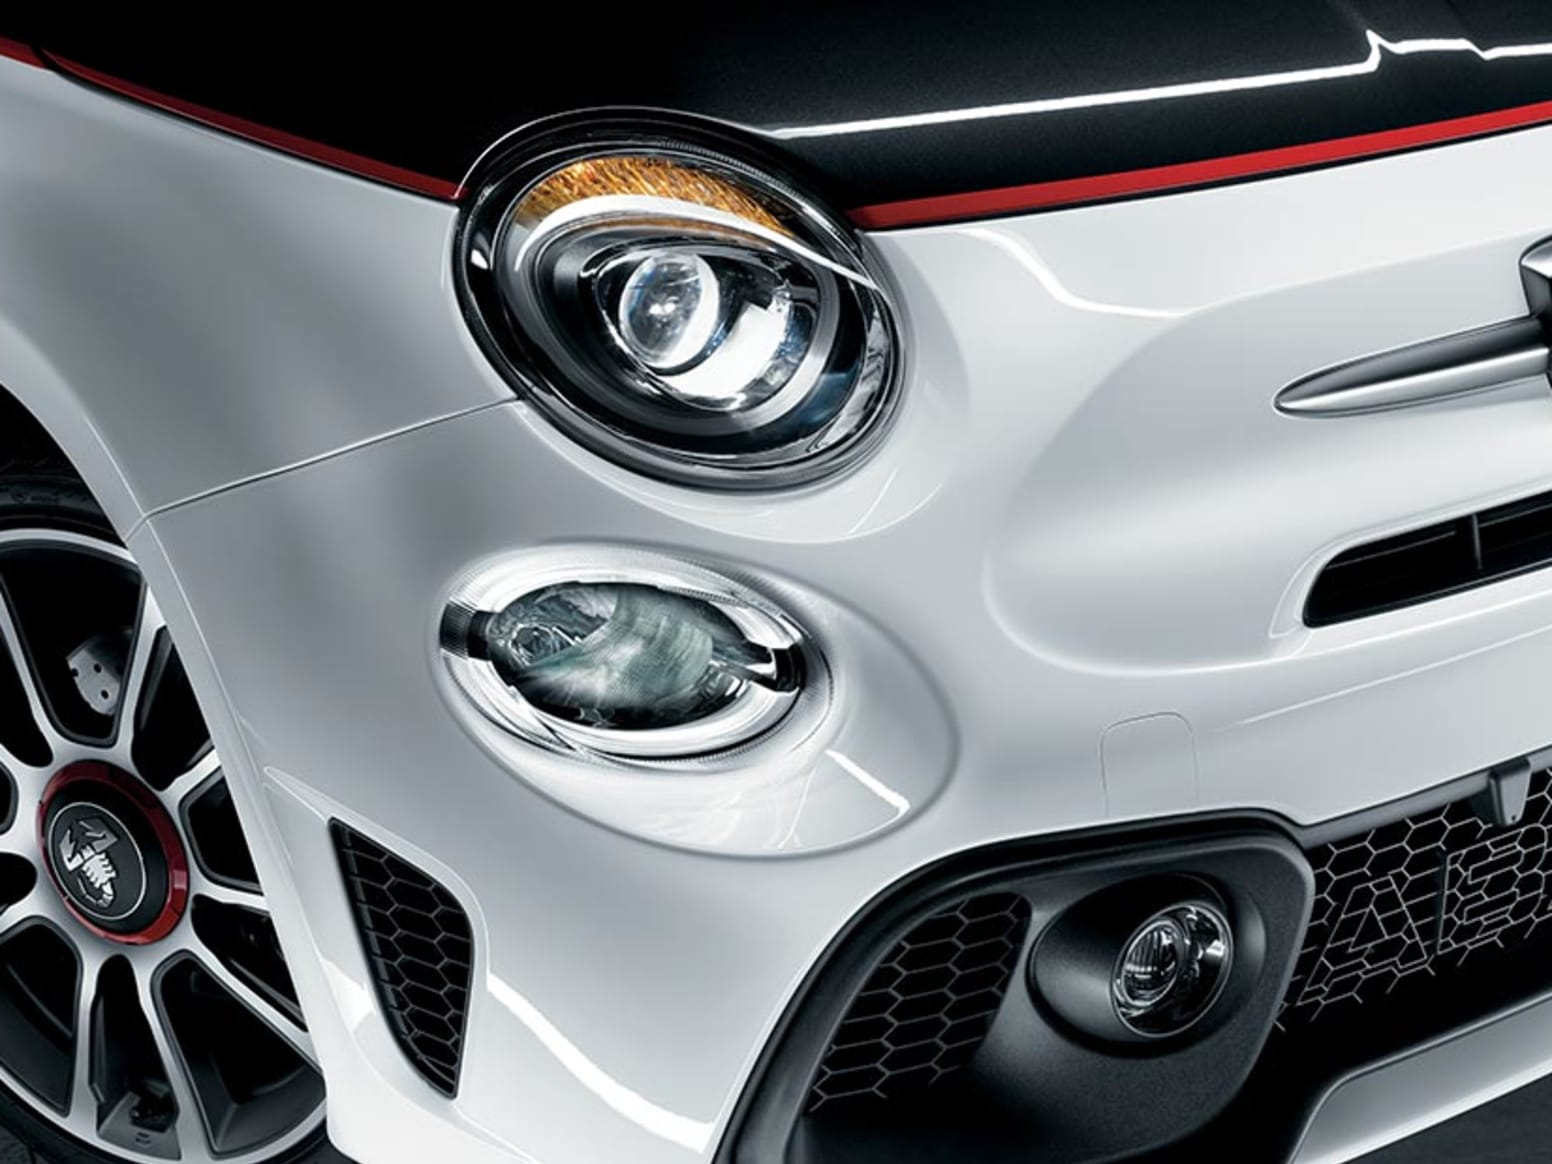 Abarth 595 Turismo Headlights